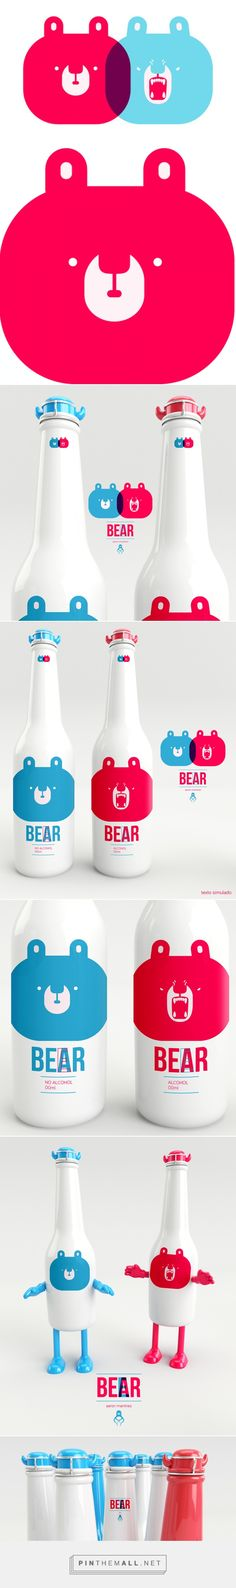 ICE BEEAR on Behance by Aaron Martinez curated by Packaging Diva PD there's not a whole lot more to this design but it is unbearably cute #packaging created via https://www.behance.net/gallery/ICE-BEEAR/10780621